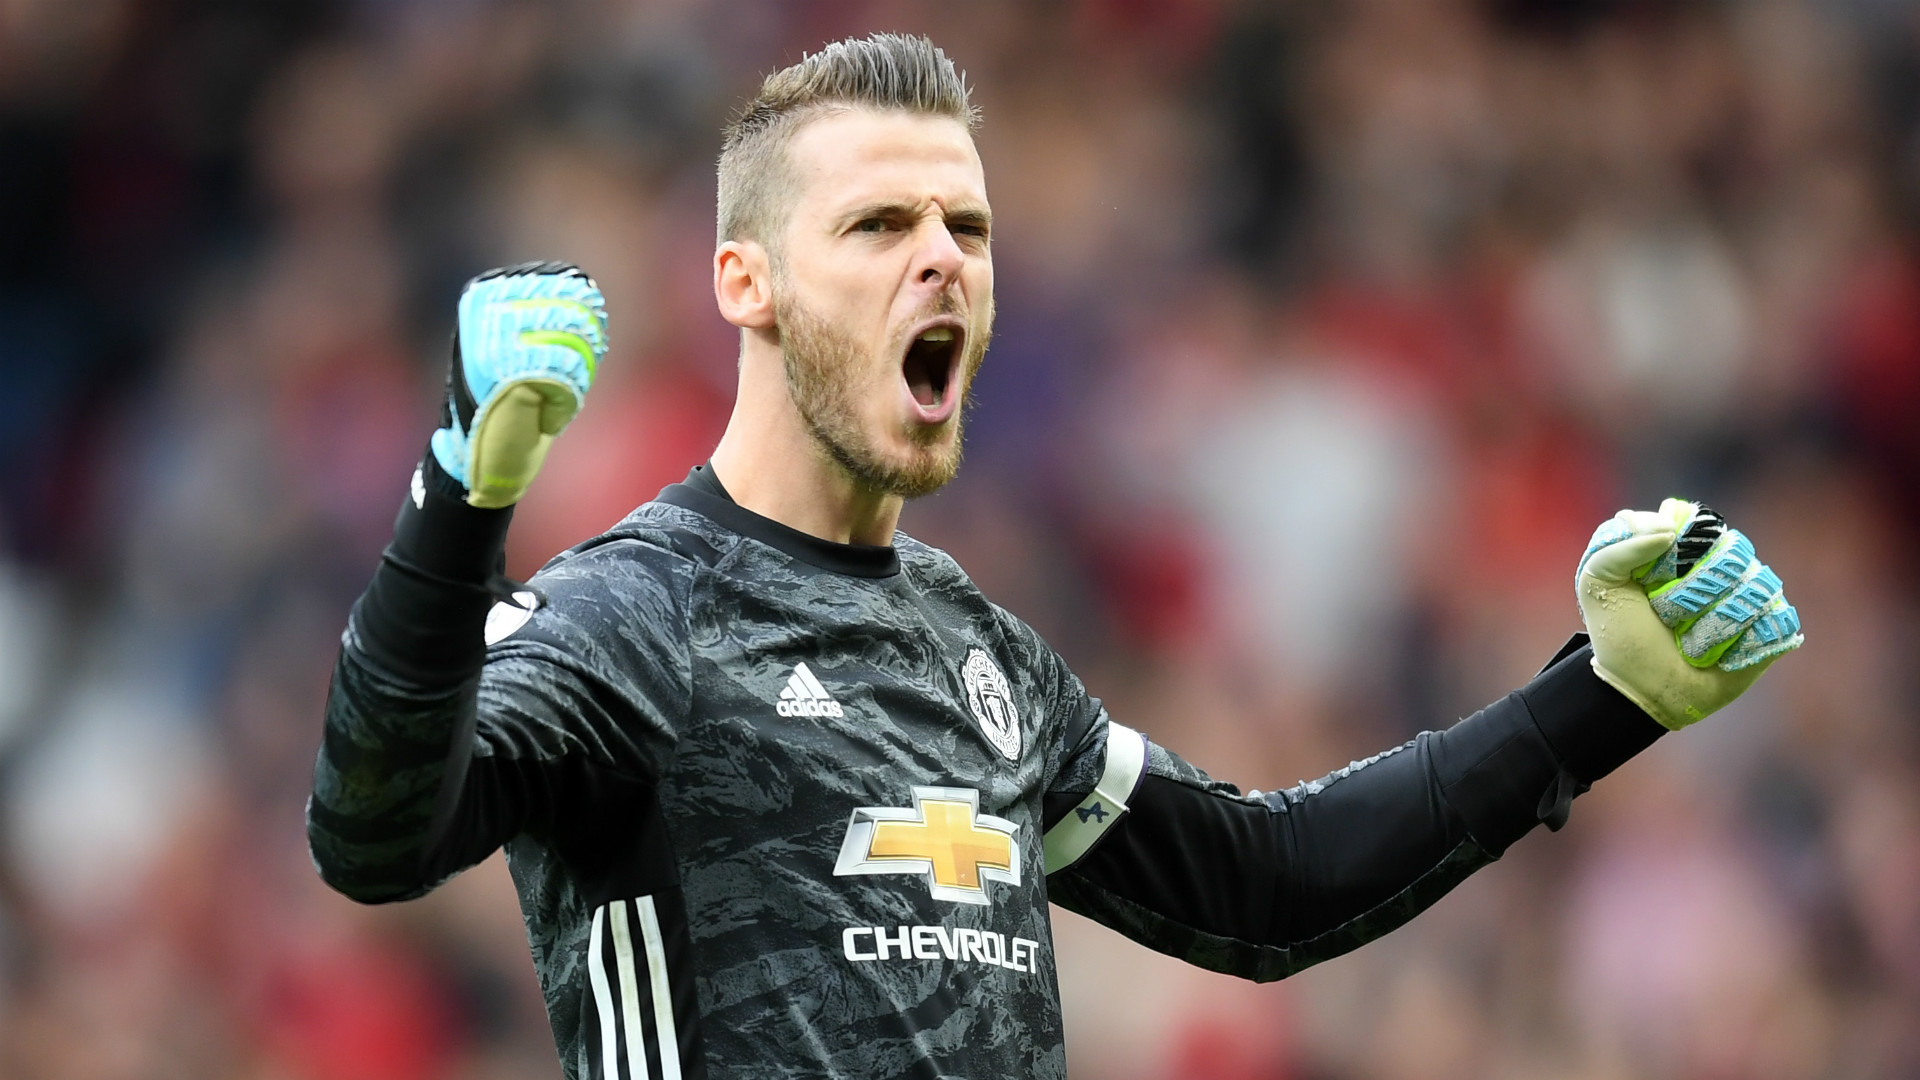 De Gea signs new four-year deal with Man Utd